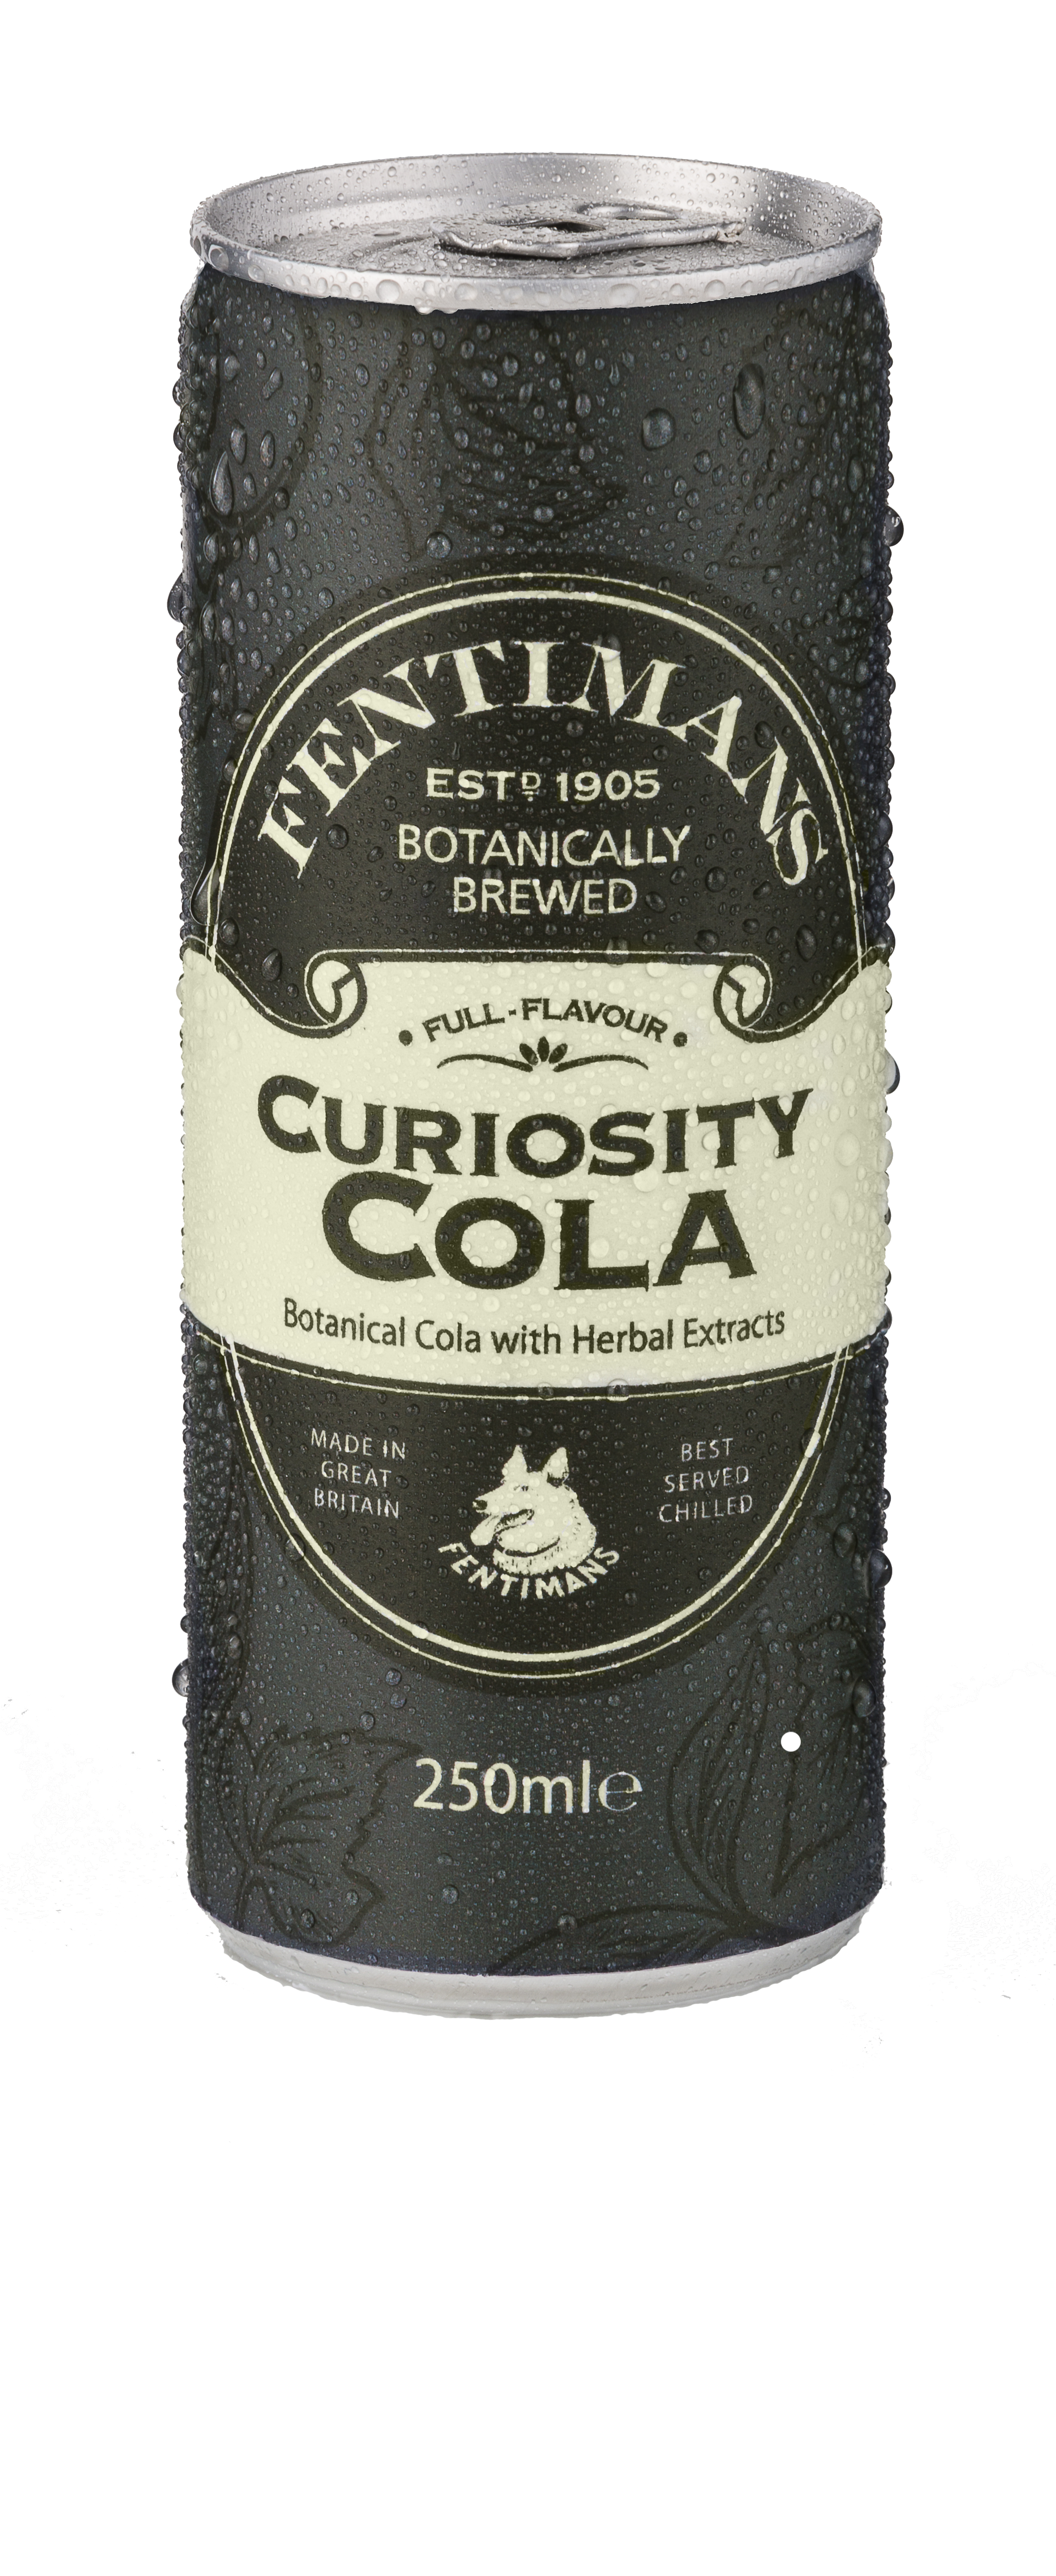 Fents Curiosity Cola Cans